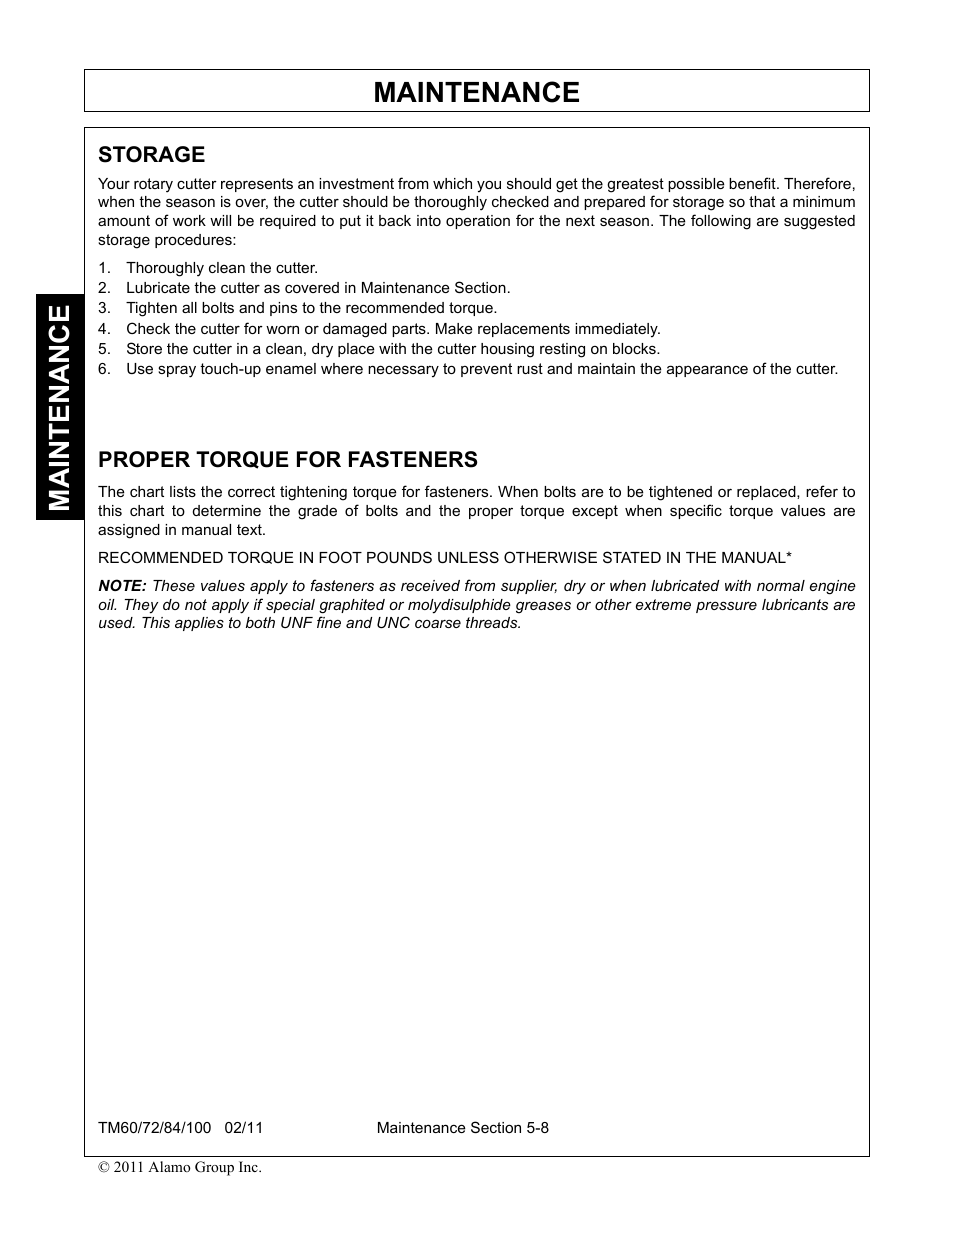 Storage, Thoroughly clean the cutter, Proper torque for fasteners | Blue  Rhino TM72 User Manual | Page 148 / 156